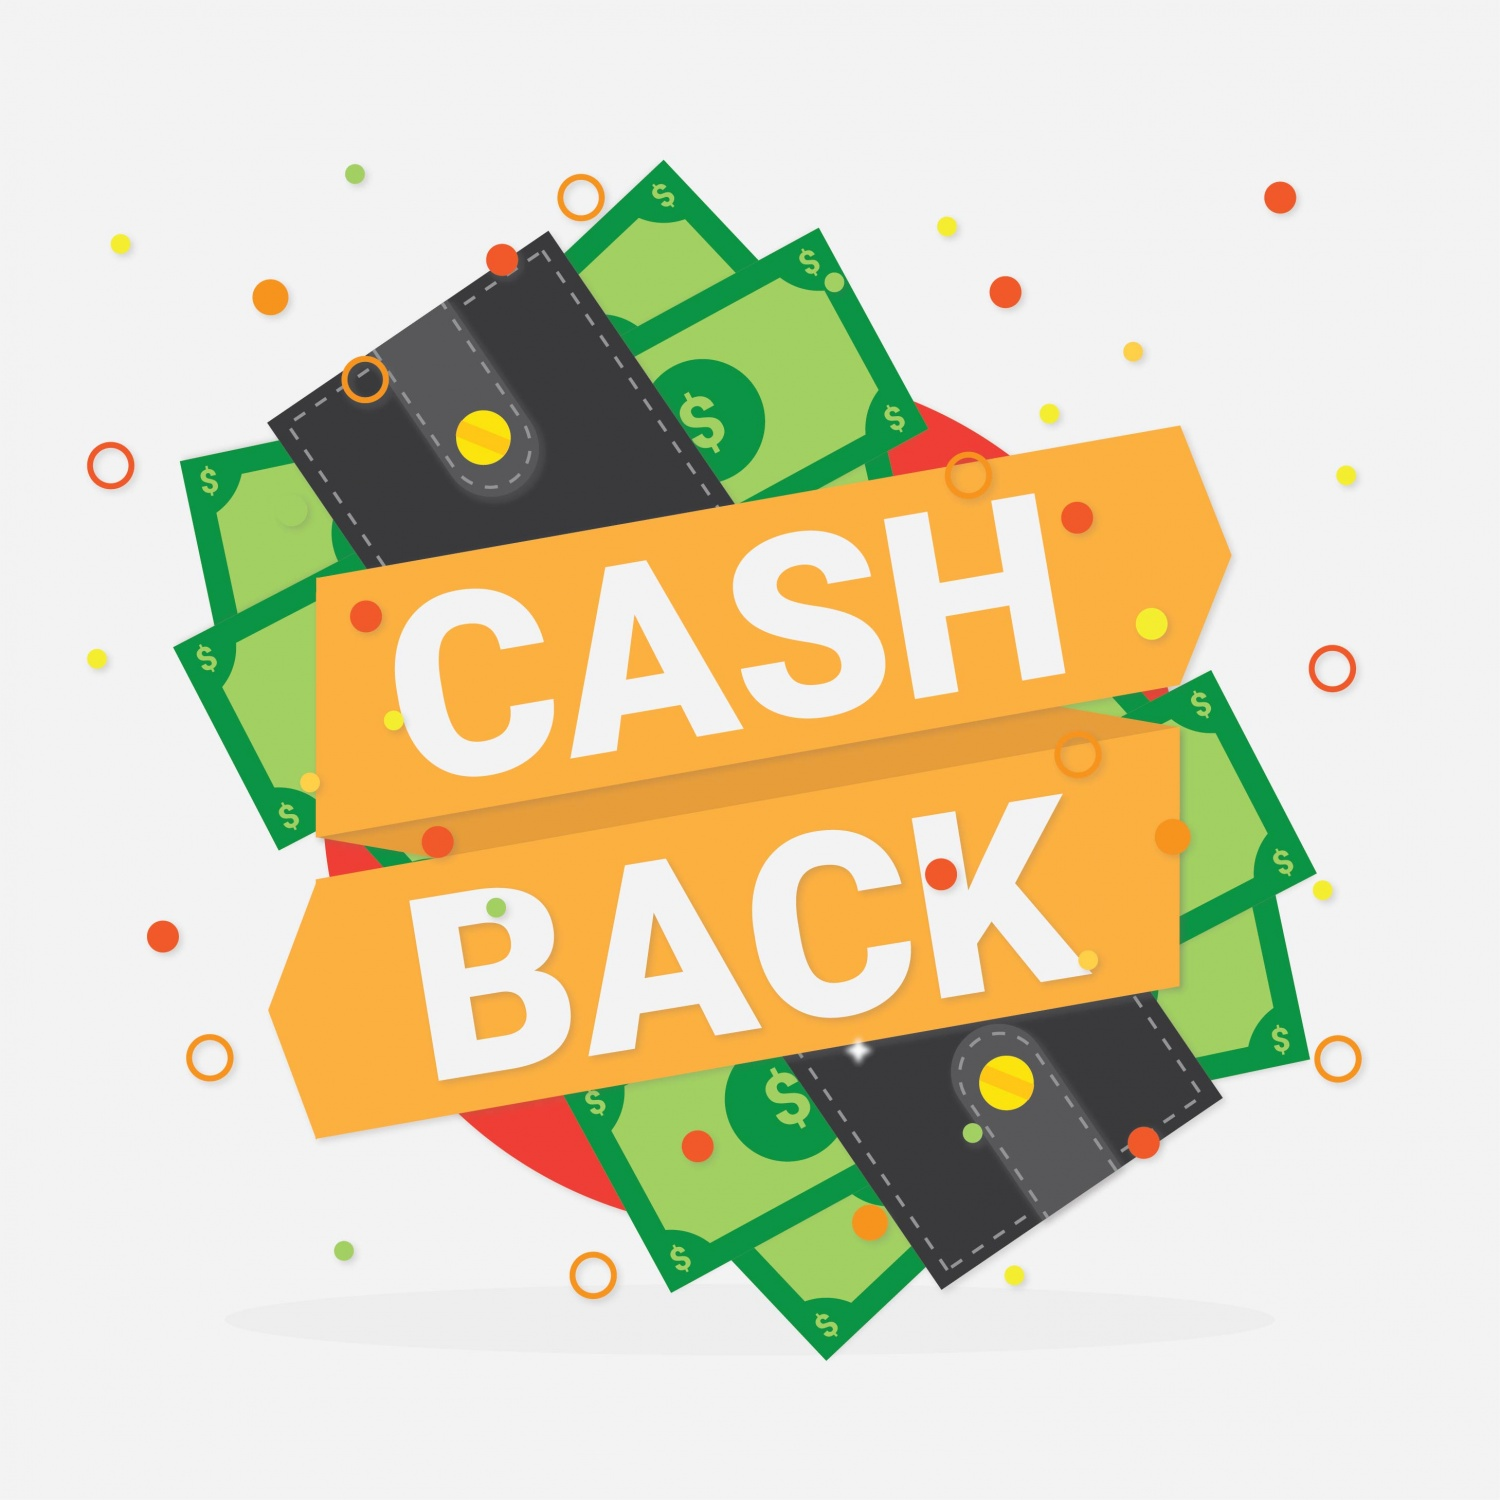 Take 50 rubles cashback for helping a friend!